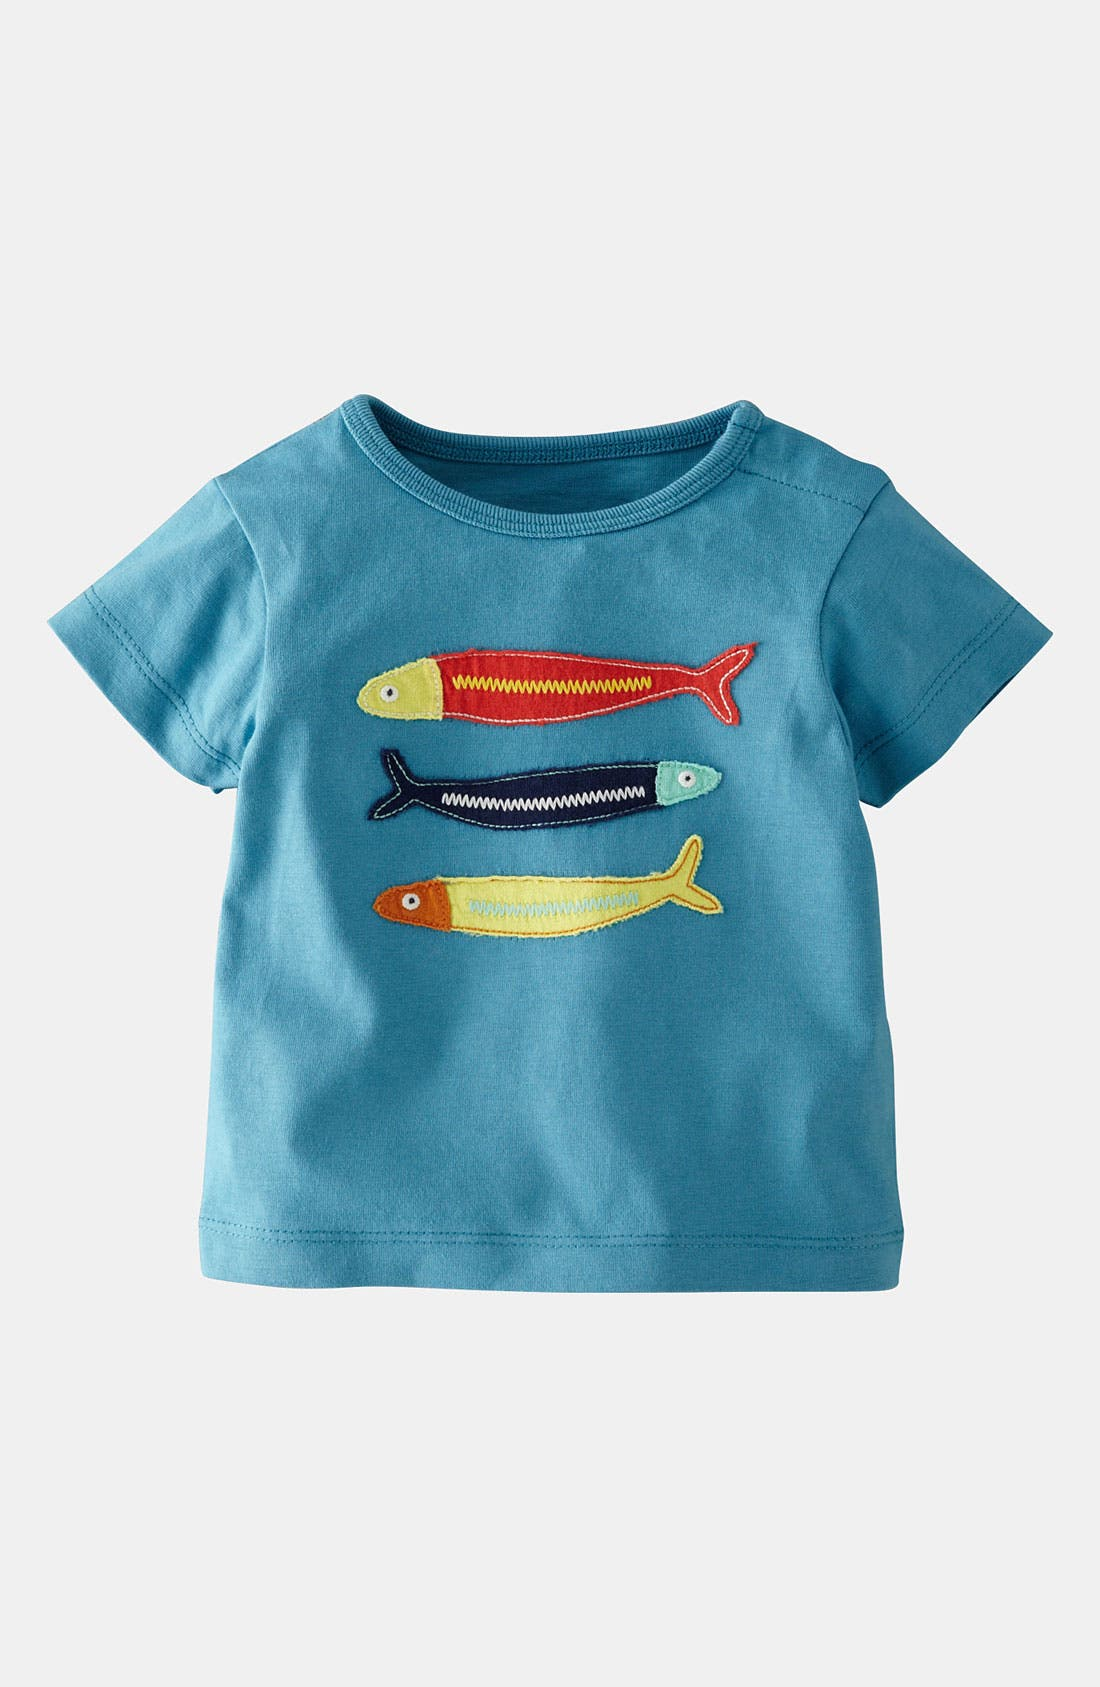 Main Image - Mini Boden 'Big Appliqué' T-Shirt (Infant)